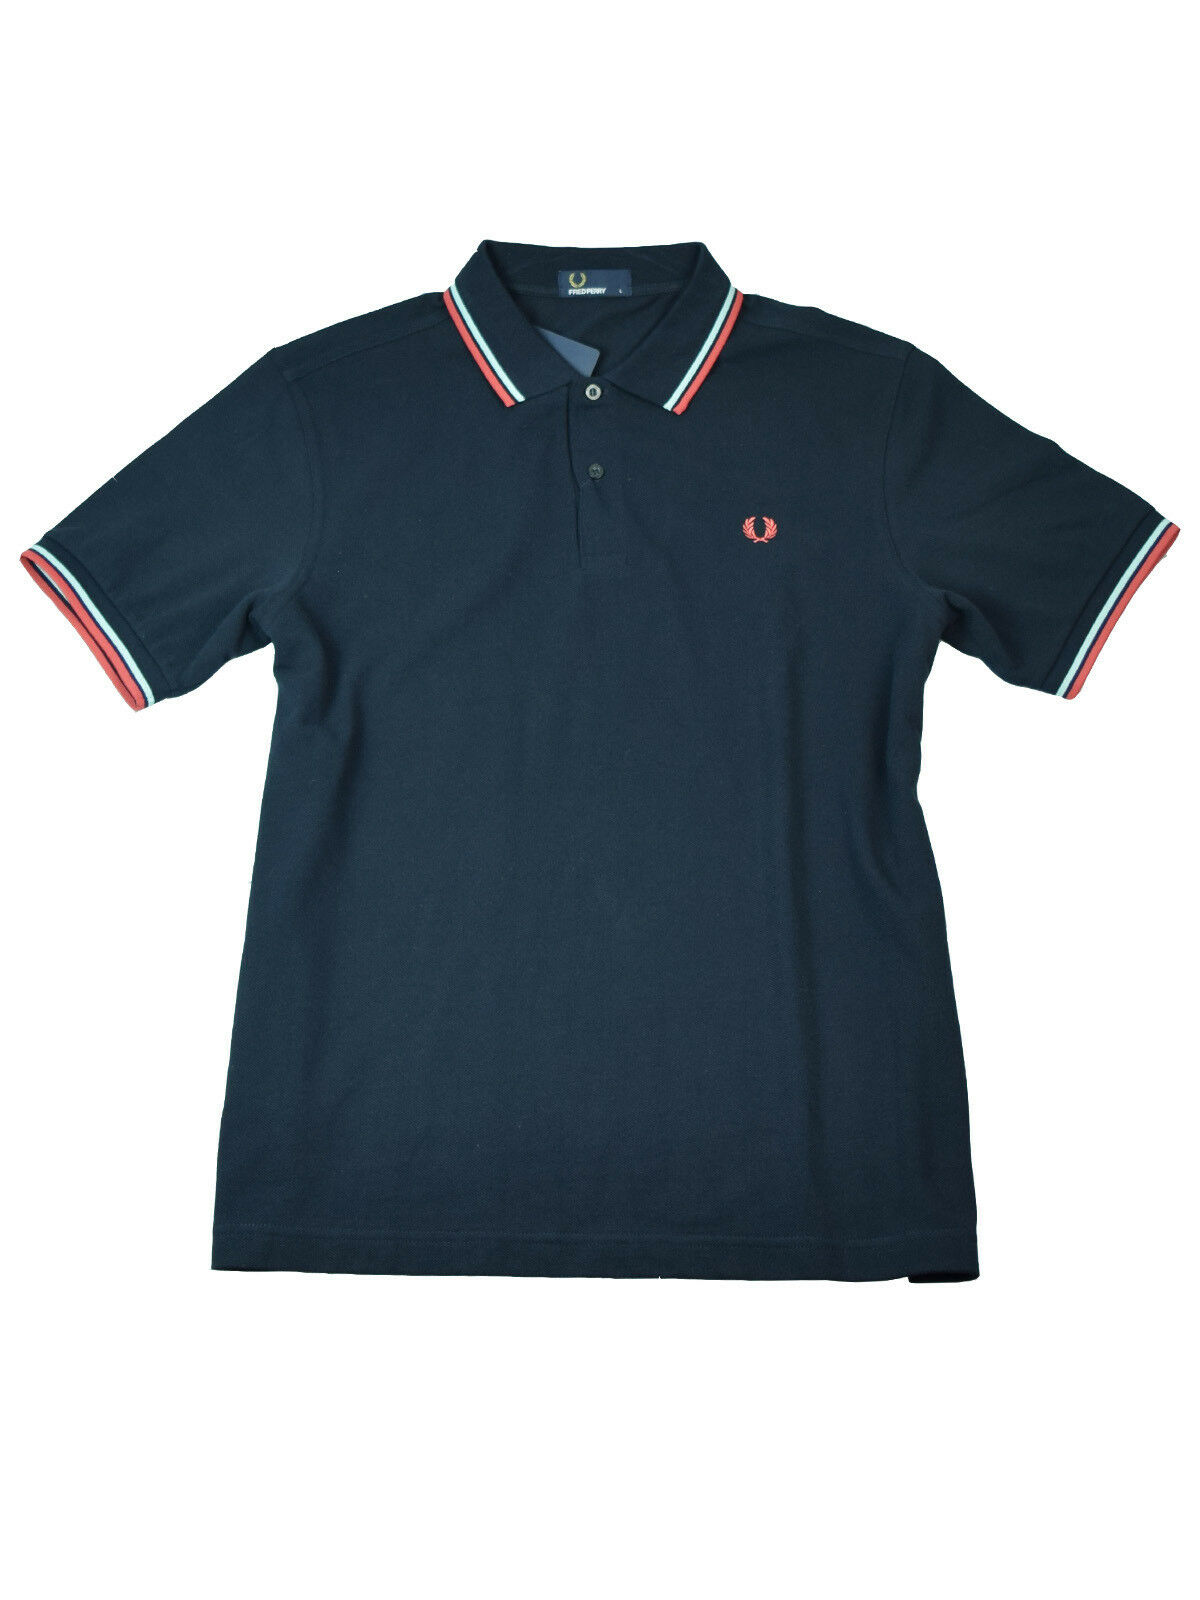 Fred Perry Polo - Shirt M1200 806 Navy   Hellblue   red  5757